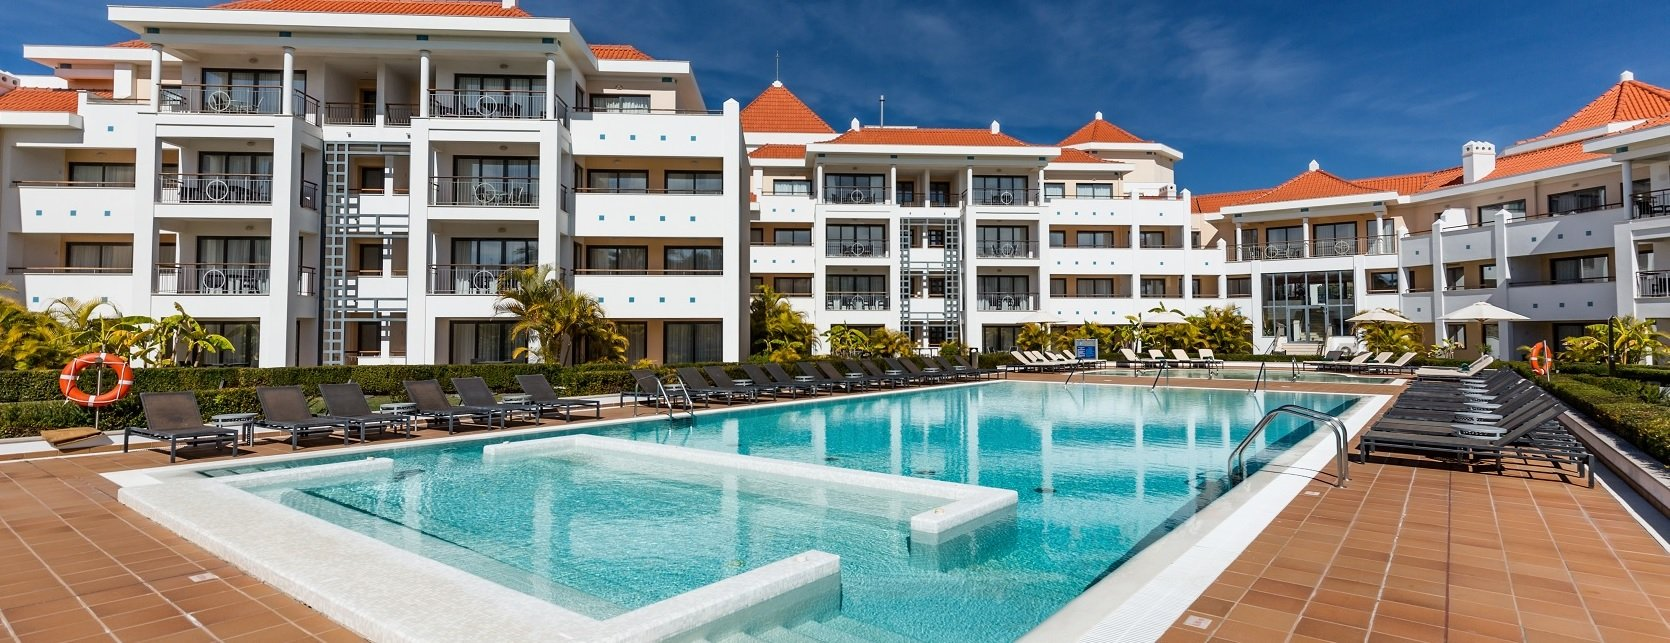 As Cascatas Golf Resort & Spa Vilamoura - Vilamoura -